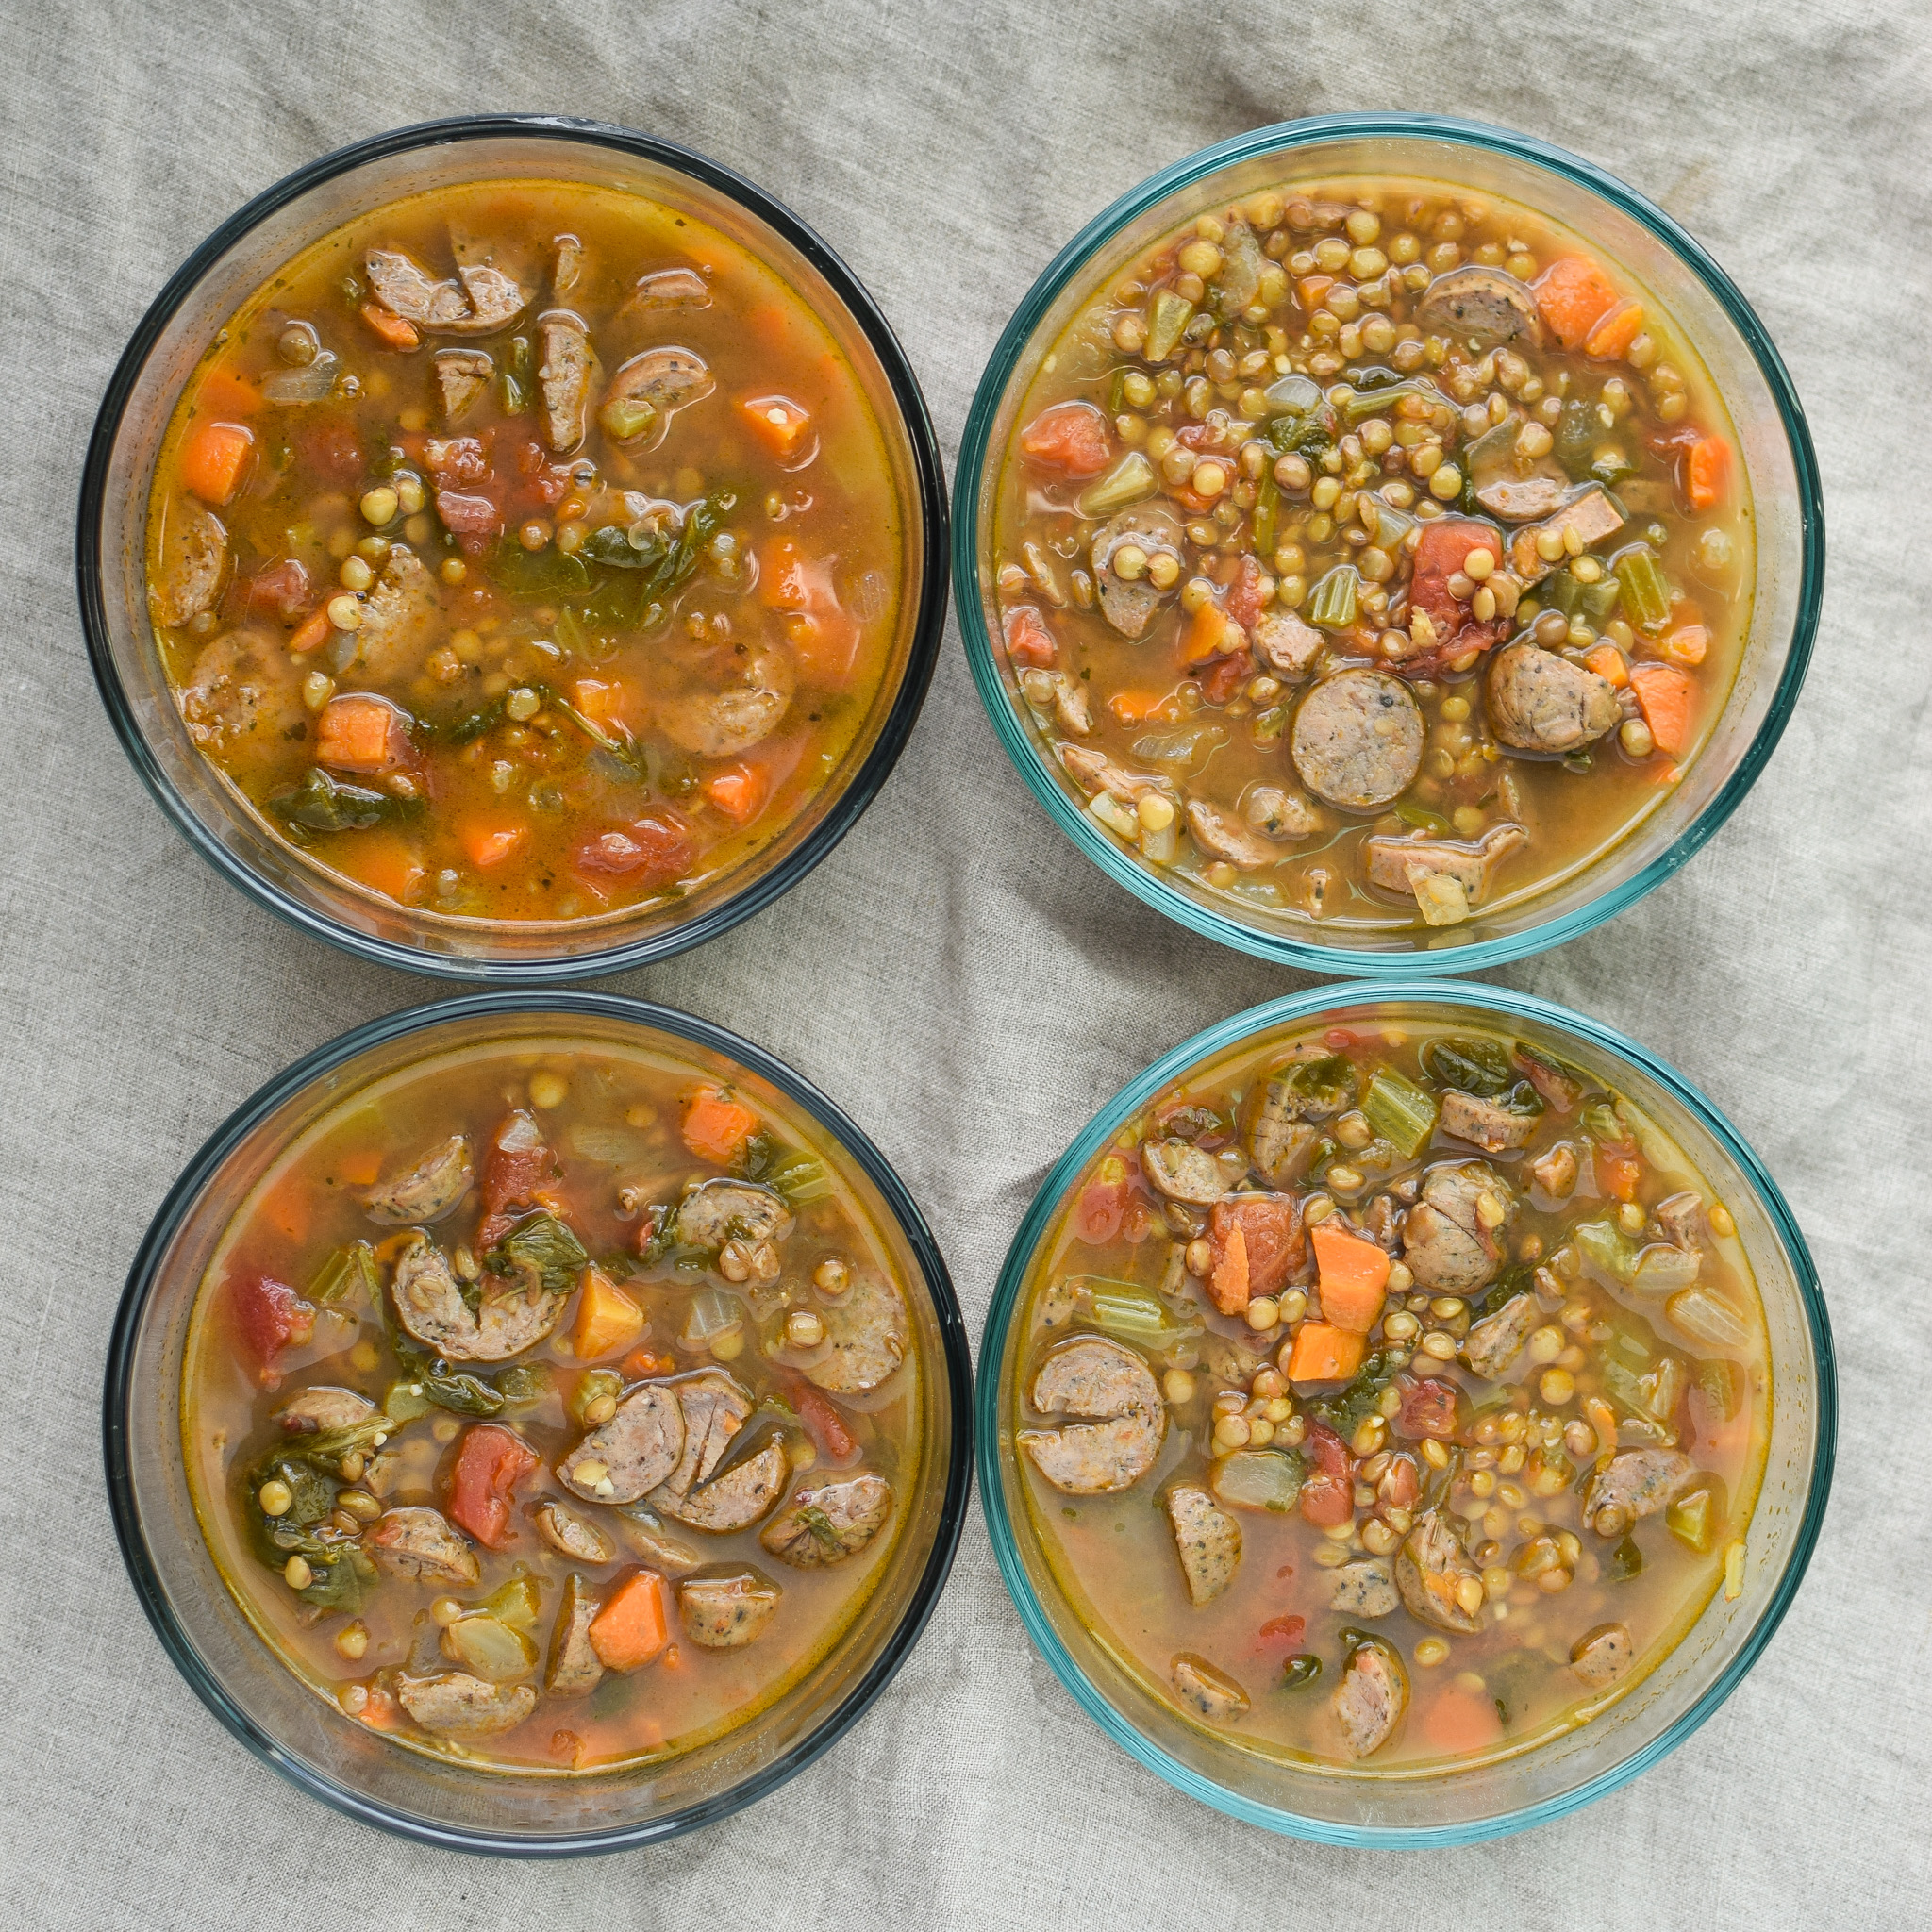 Vegetable & Chicken Sausage Lentil Soup recipe - Simple, hearty and delicious fall soup that will make your home smell amazing on any week night! ProjectMealPlan.com